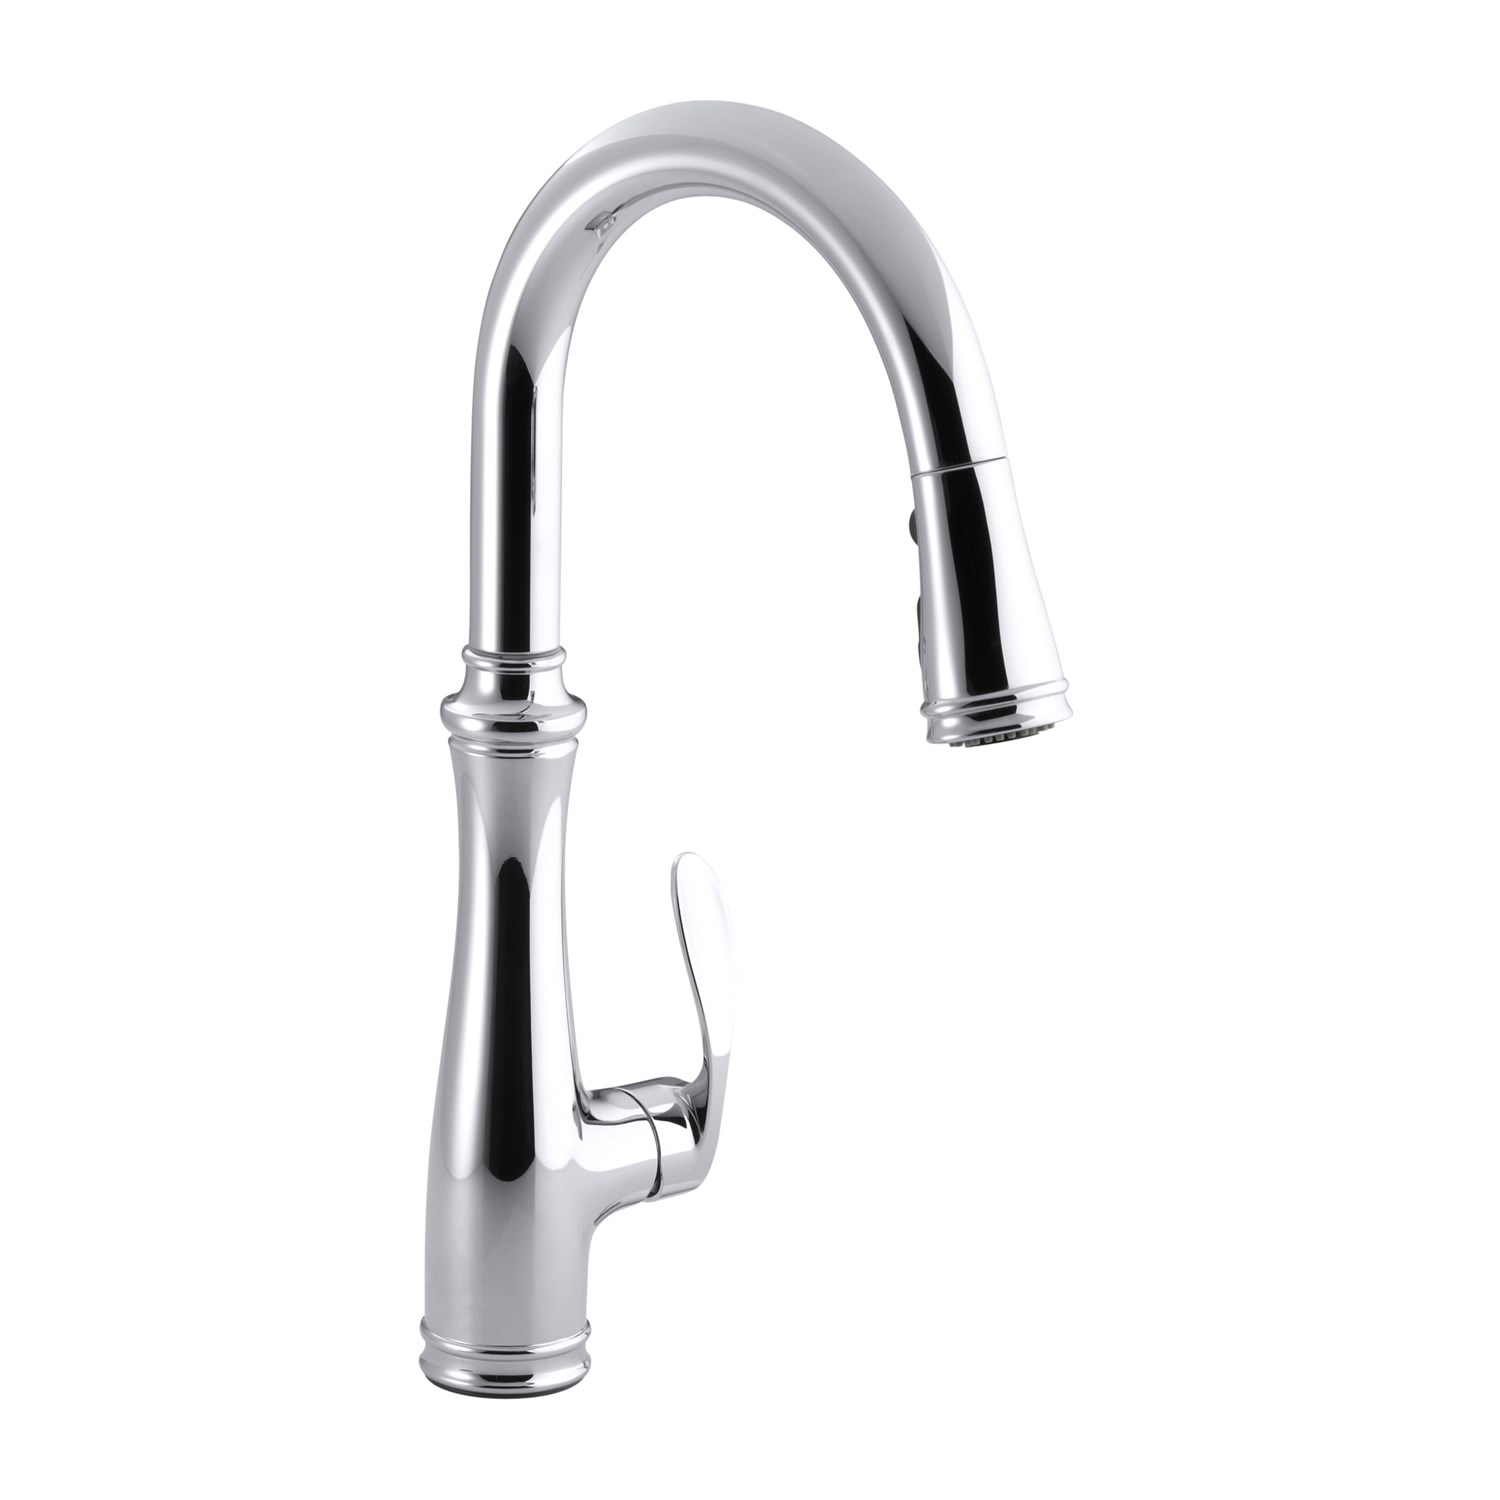 Marvellous delta cassidy kitchen faucet for kitchen faucet ideas with delta single handle kitchen faucet with spray